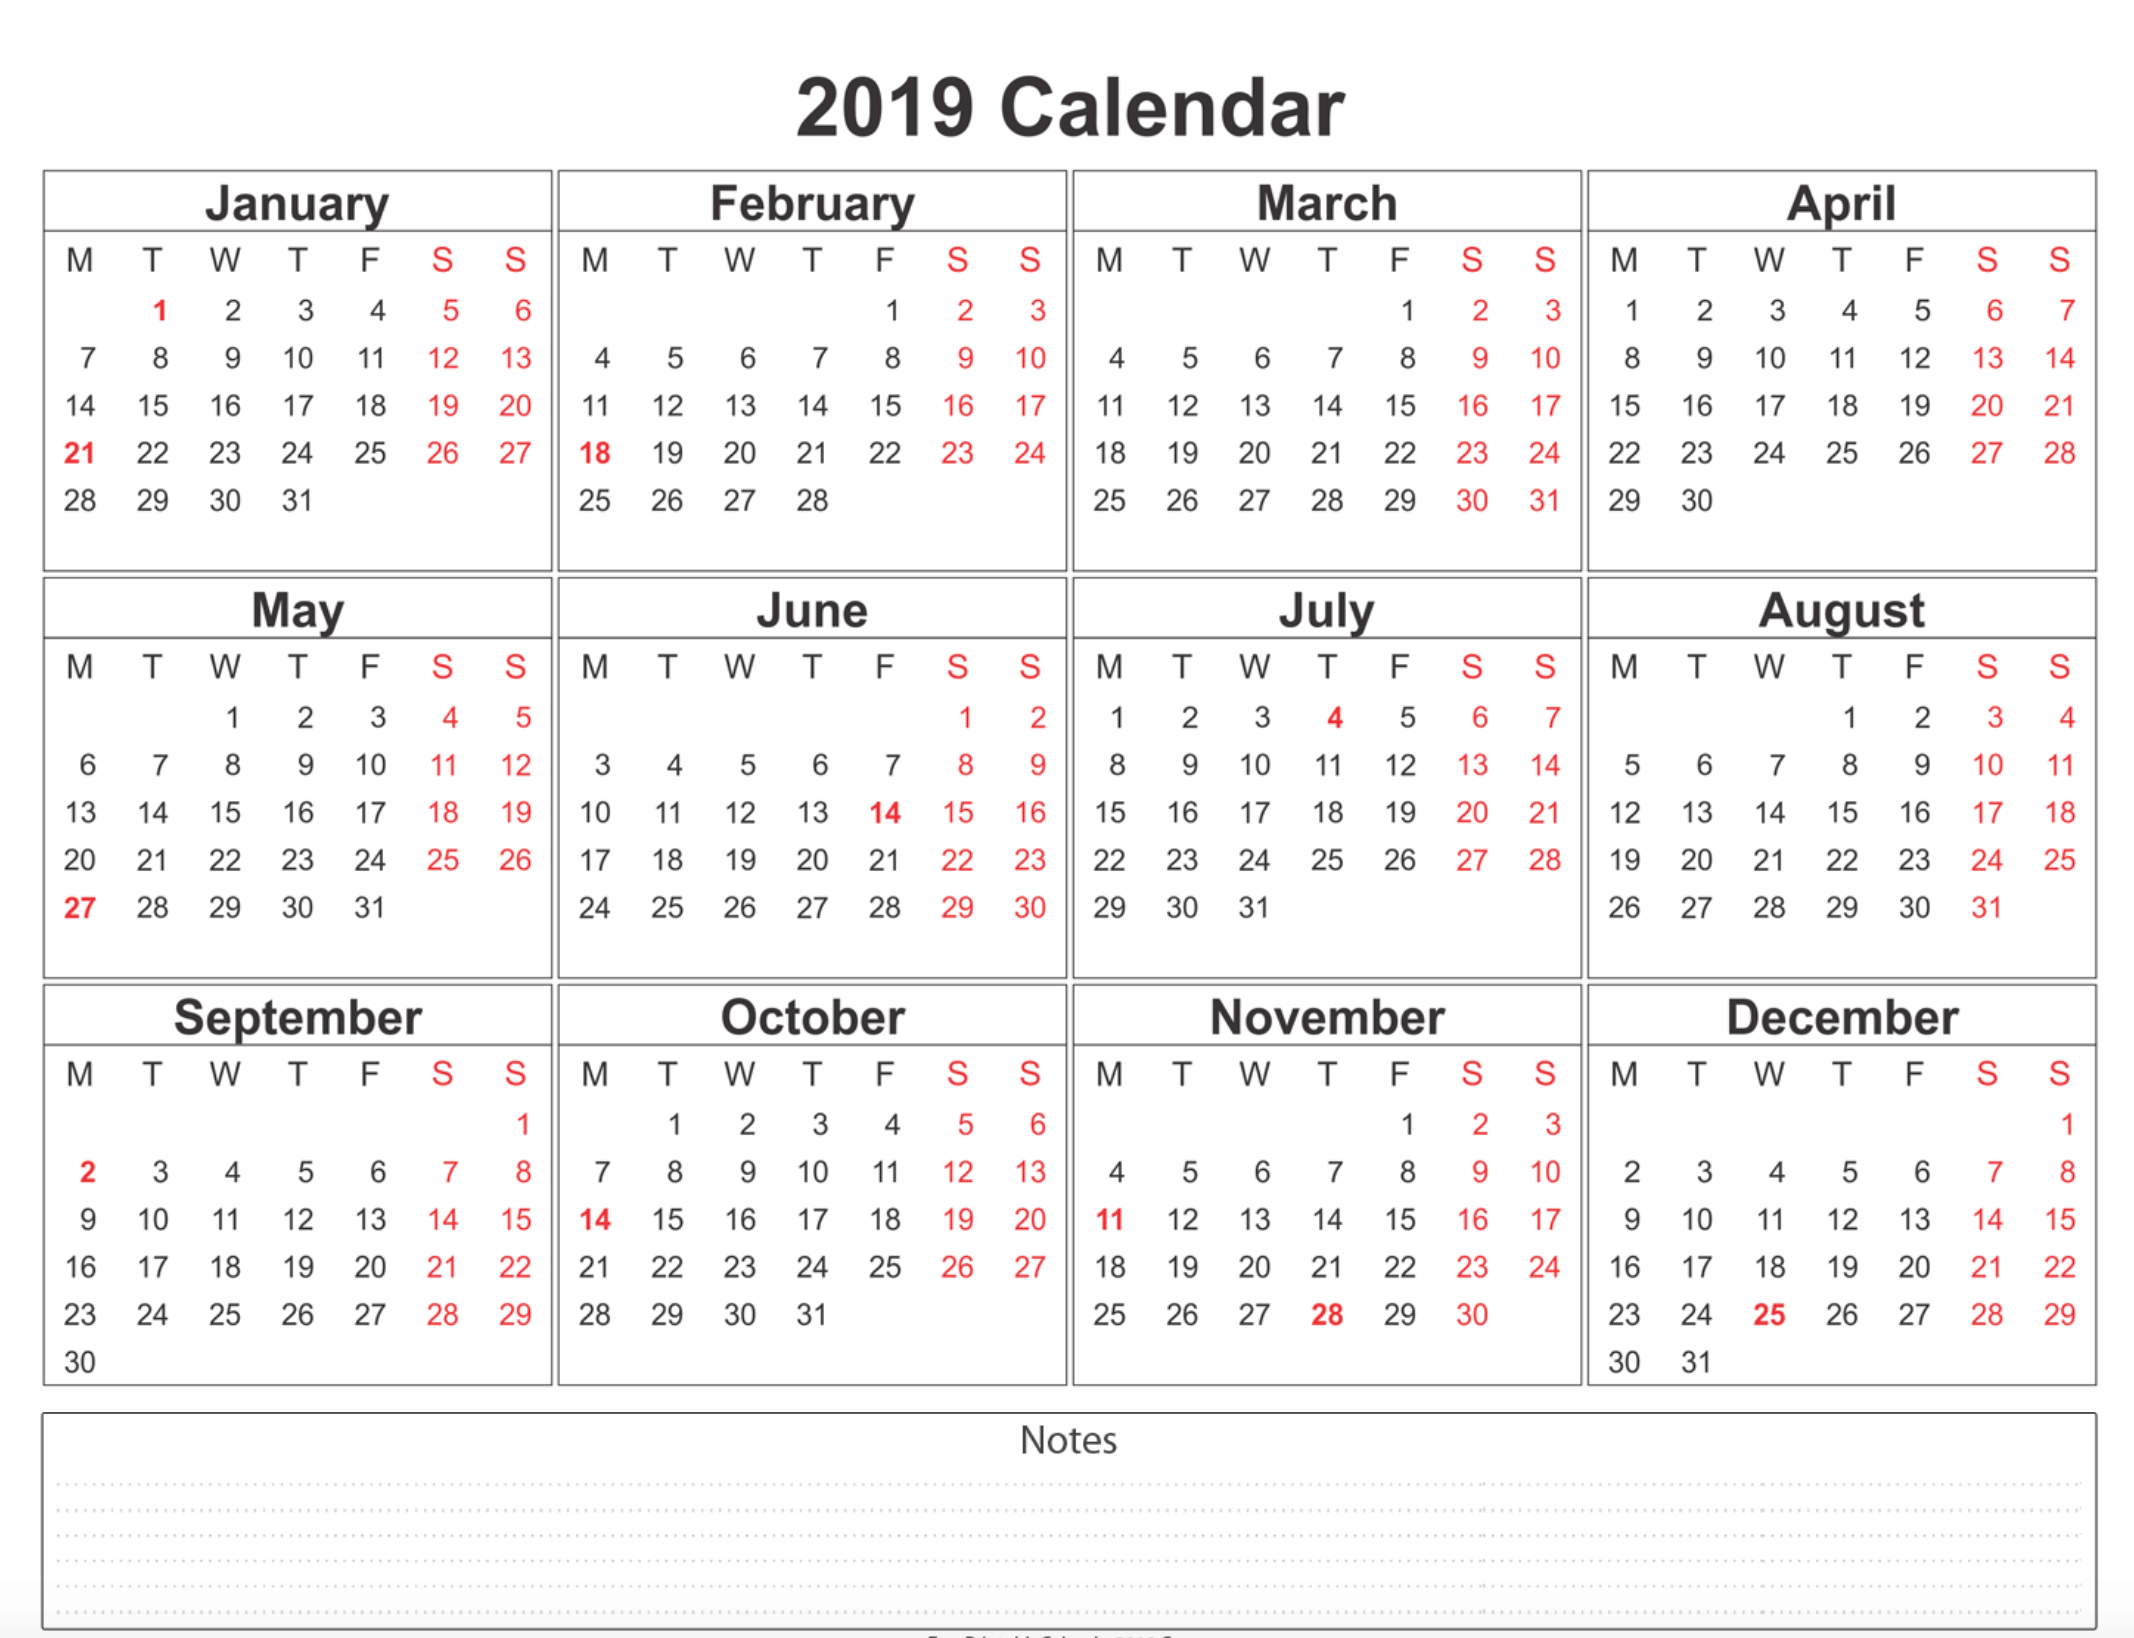 2019 blank calendar with extra notes space